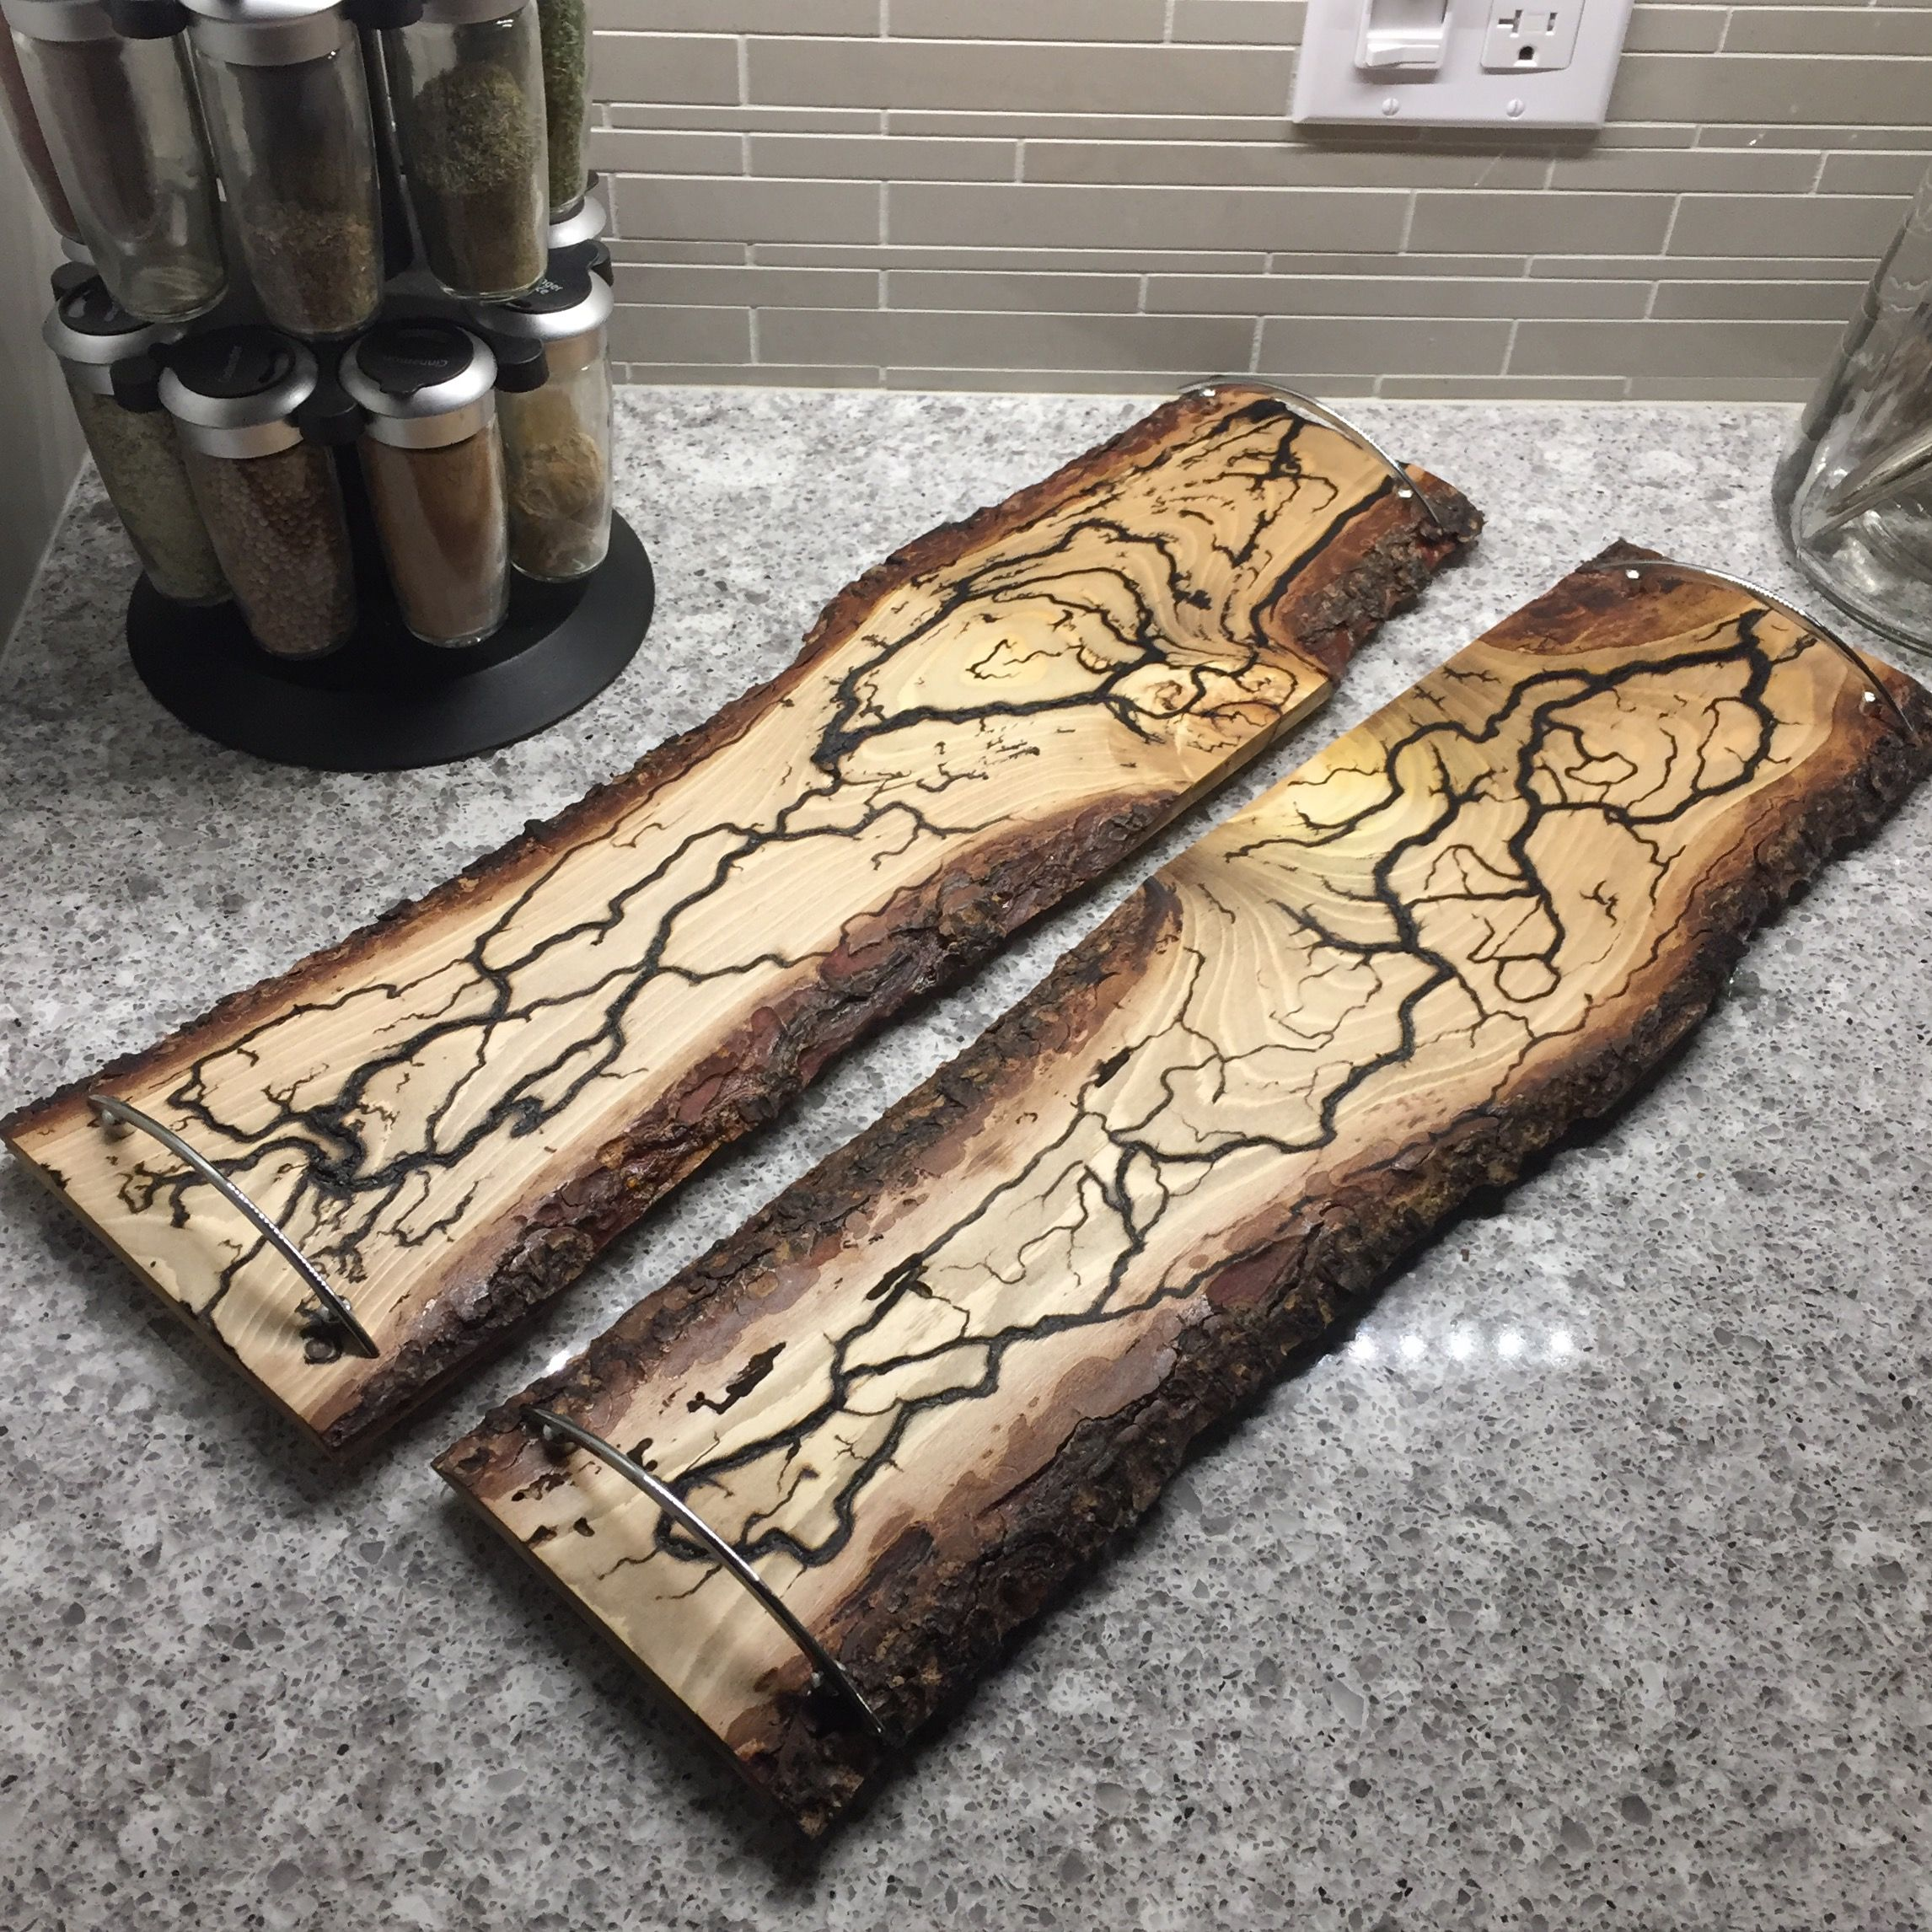 Rustic Flatware Patterns Wood Burned Serving Trays Burned With Electricity This